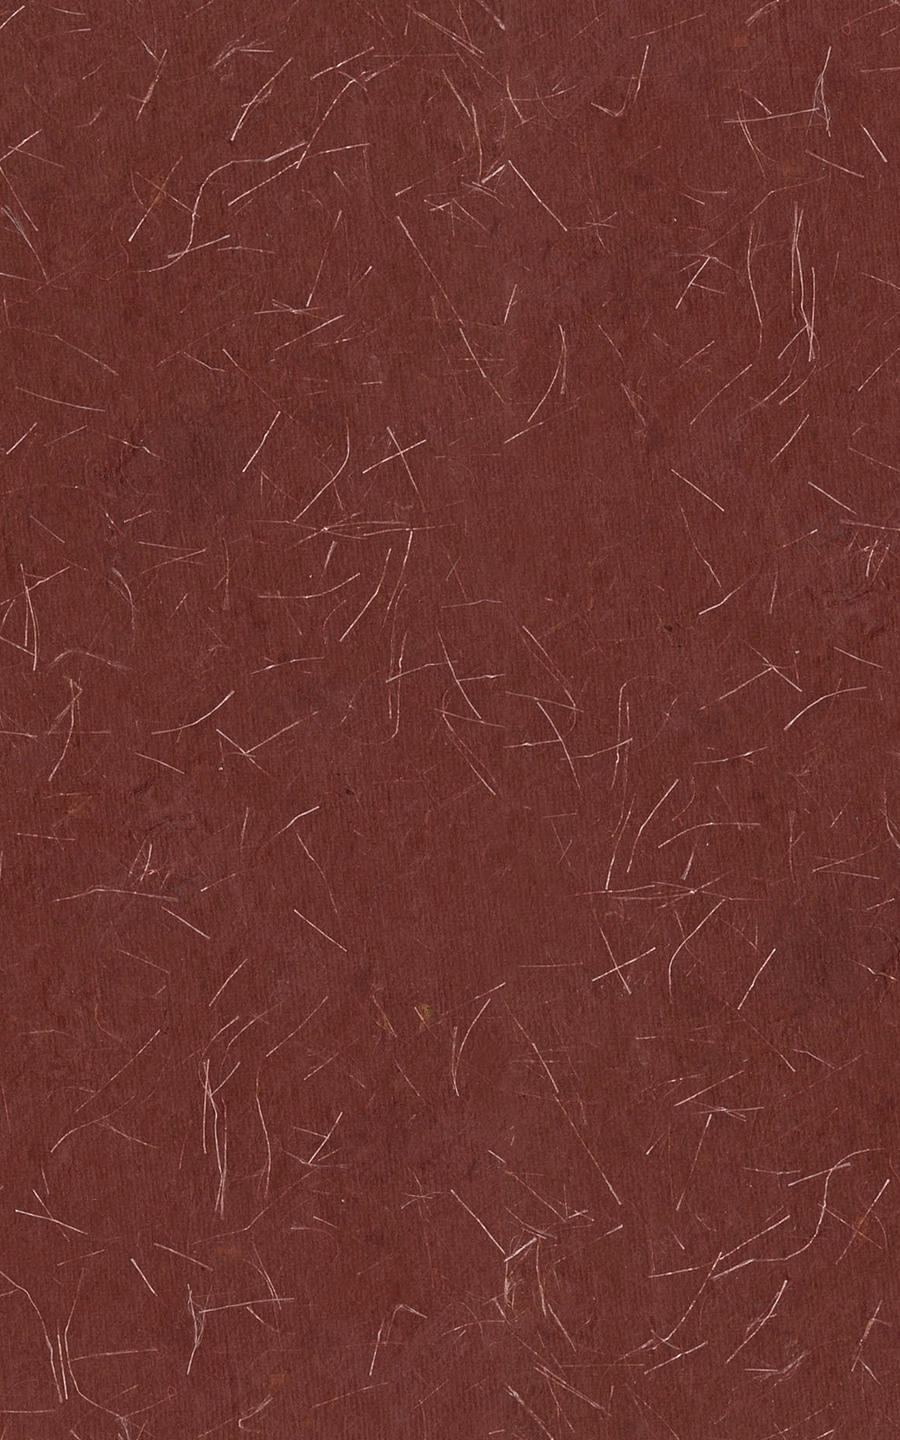 Paper Texture 1 by WDWParksGal-Stock